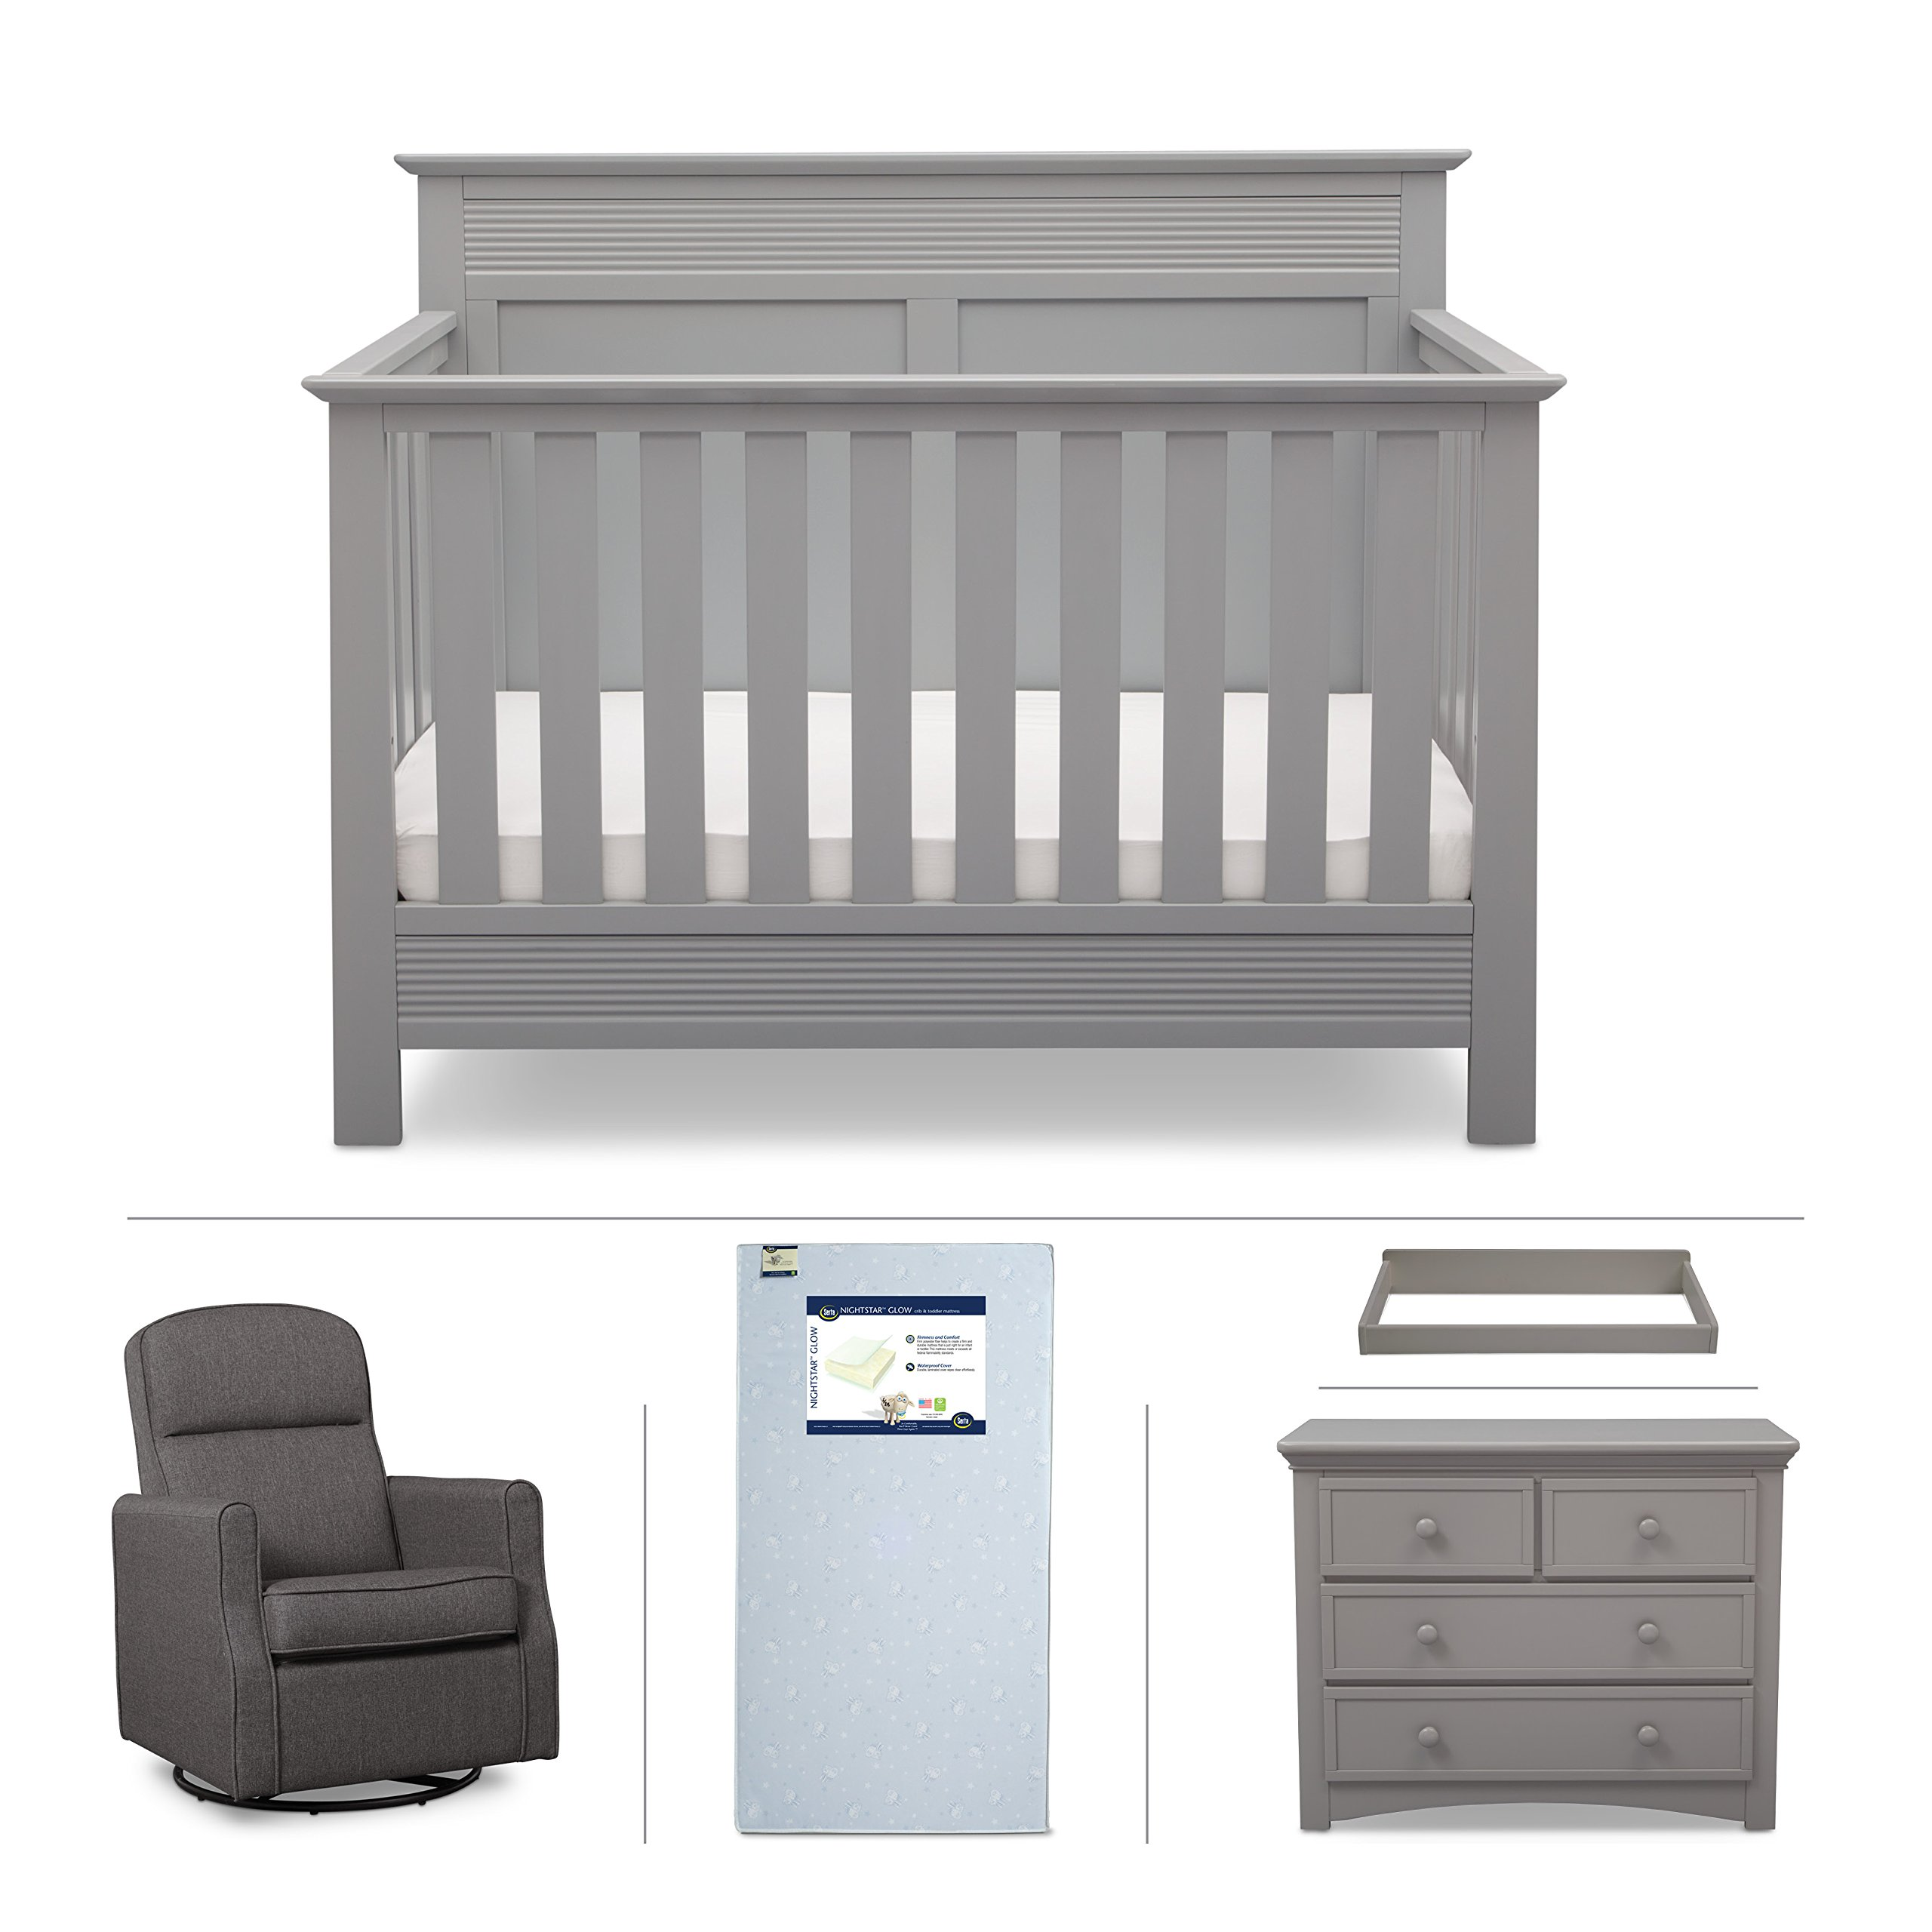 Convertible Crib Furniture Set – 5 Piece Nursery with Crib Mattress, Convertible Crib, Dresser, Glider Rocker, Changing Top – Grey/Gray